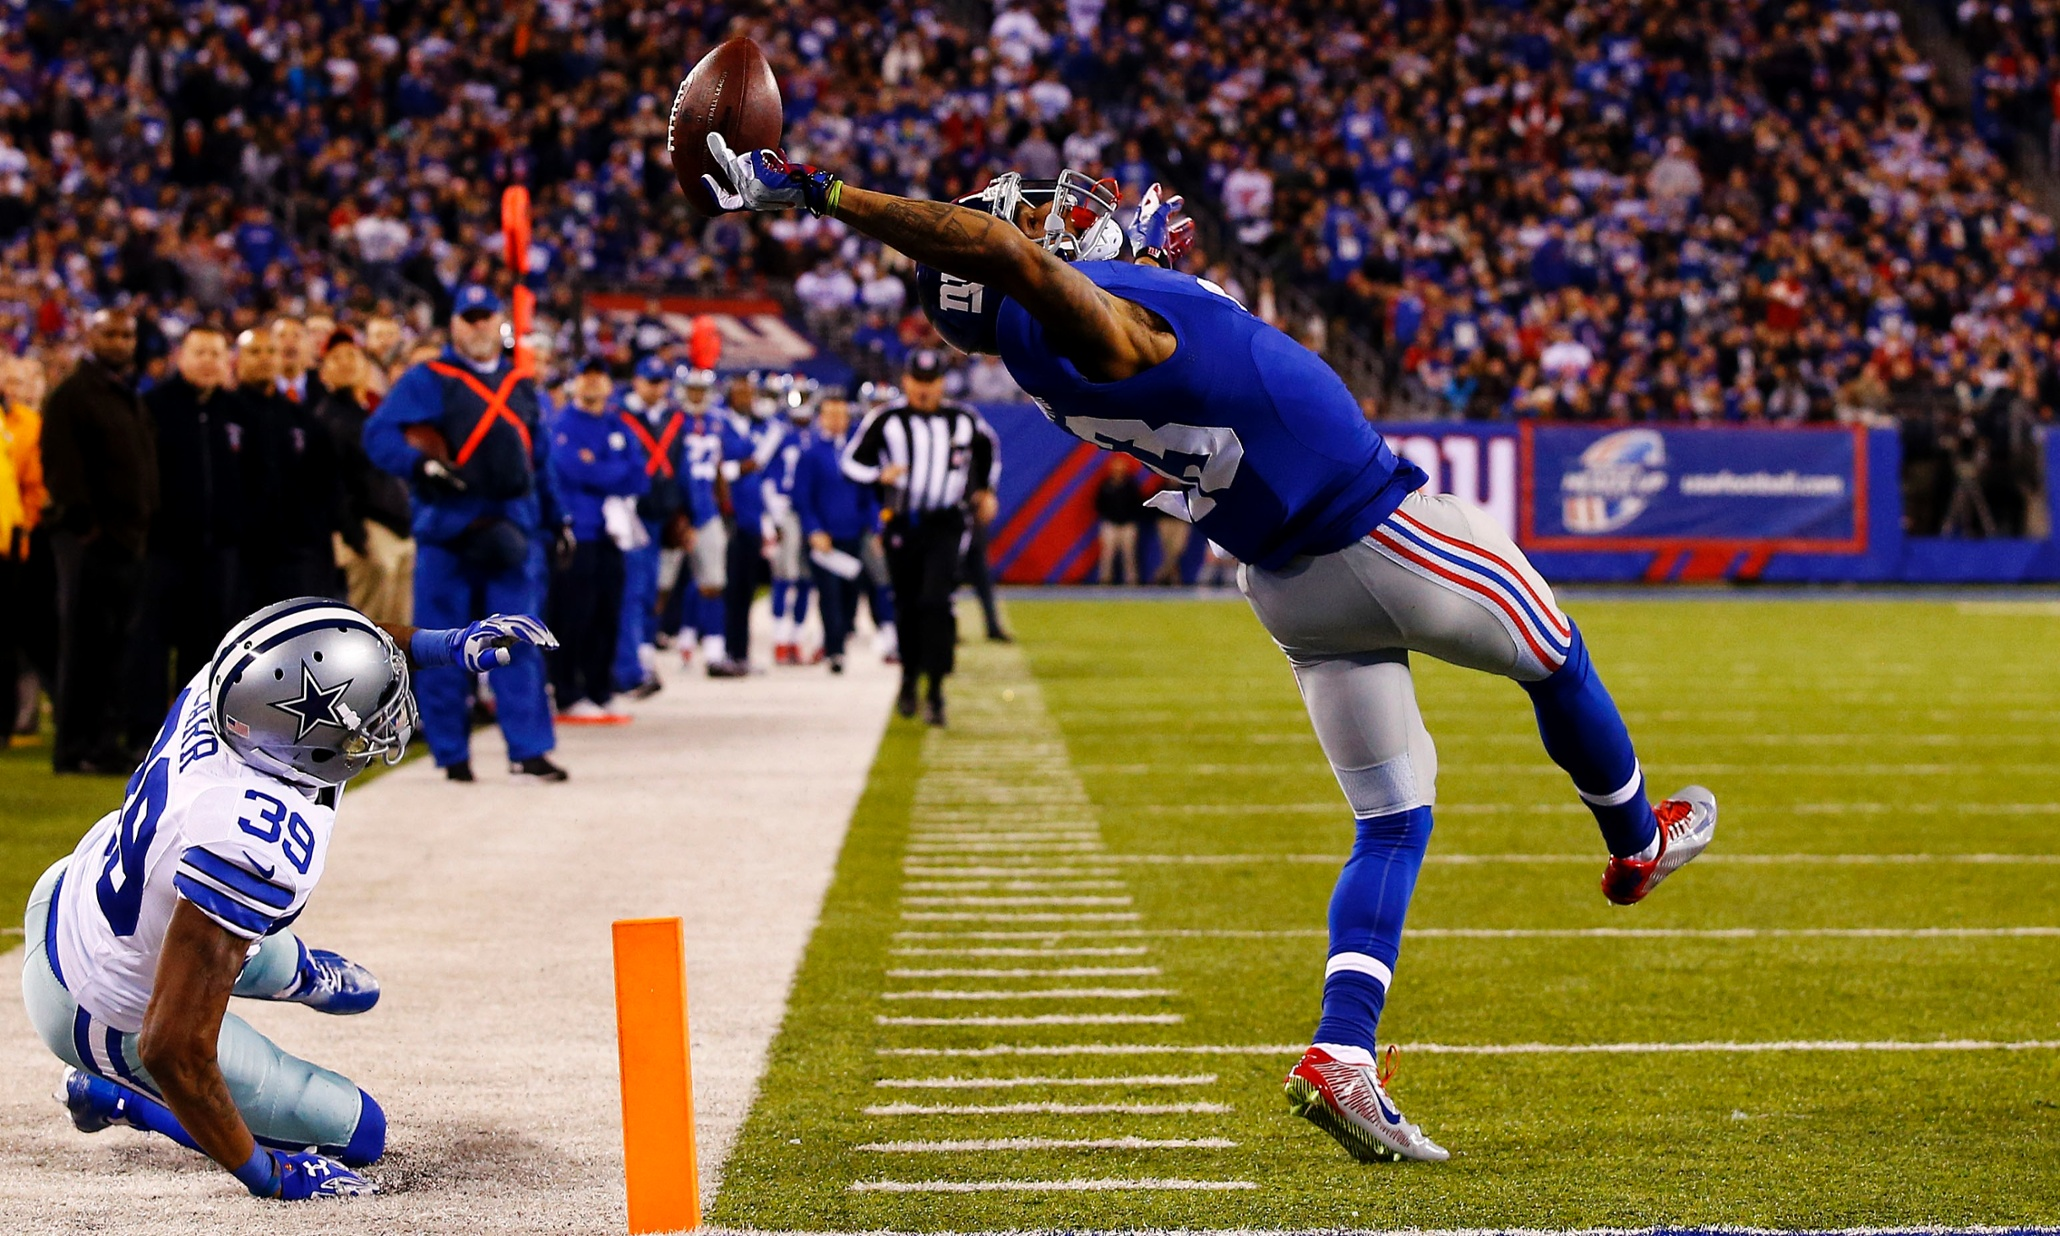 EAST RUTHERFORD, NJ - NOVEMBER 23: Odell Beckham #13 of the New York Giants scores a touchdown in the second quarter against the Dallas Cowboys at MetLife Stadium on November 23, 2014 in East Rutherford, New Jersey. (Photo by Al Bello/Getty Images)